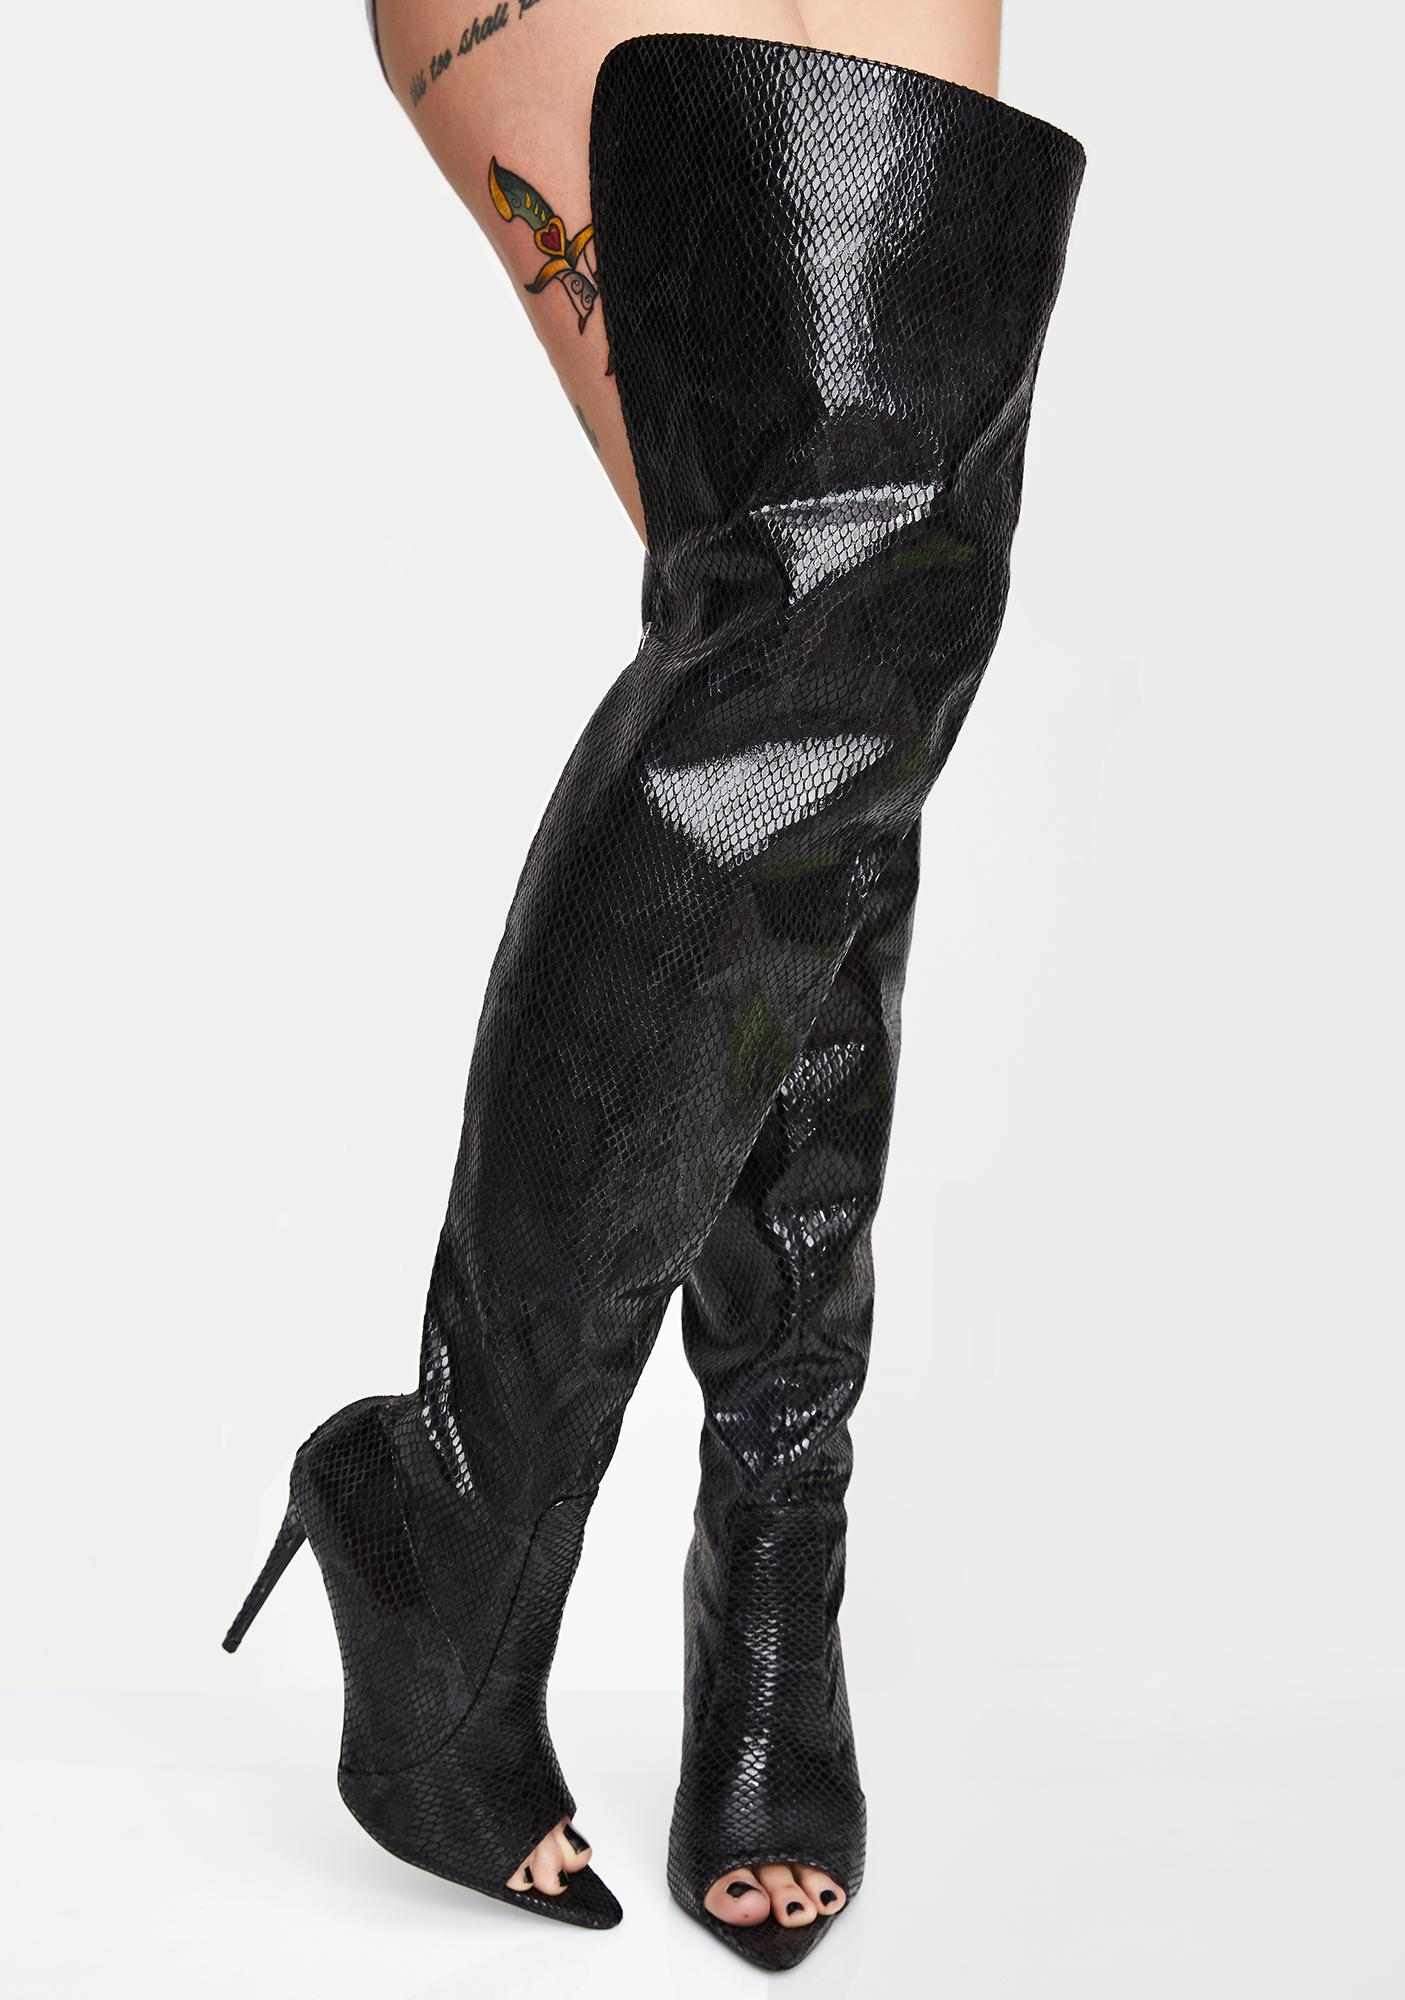 Toxic Heart Thigh High Boots